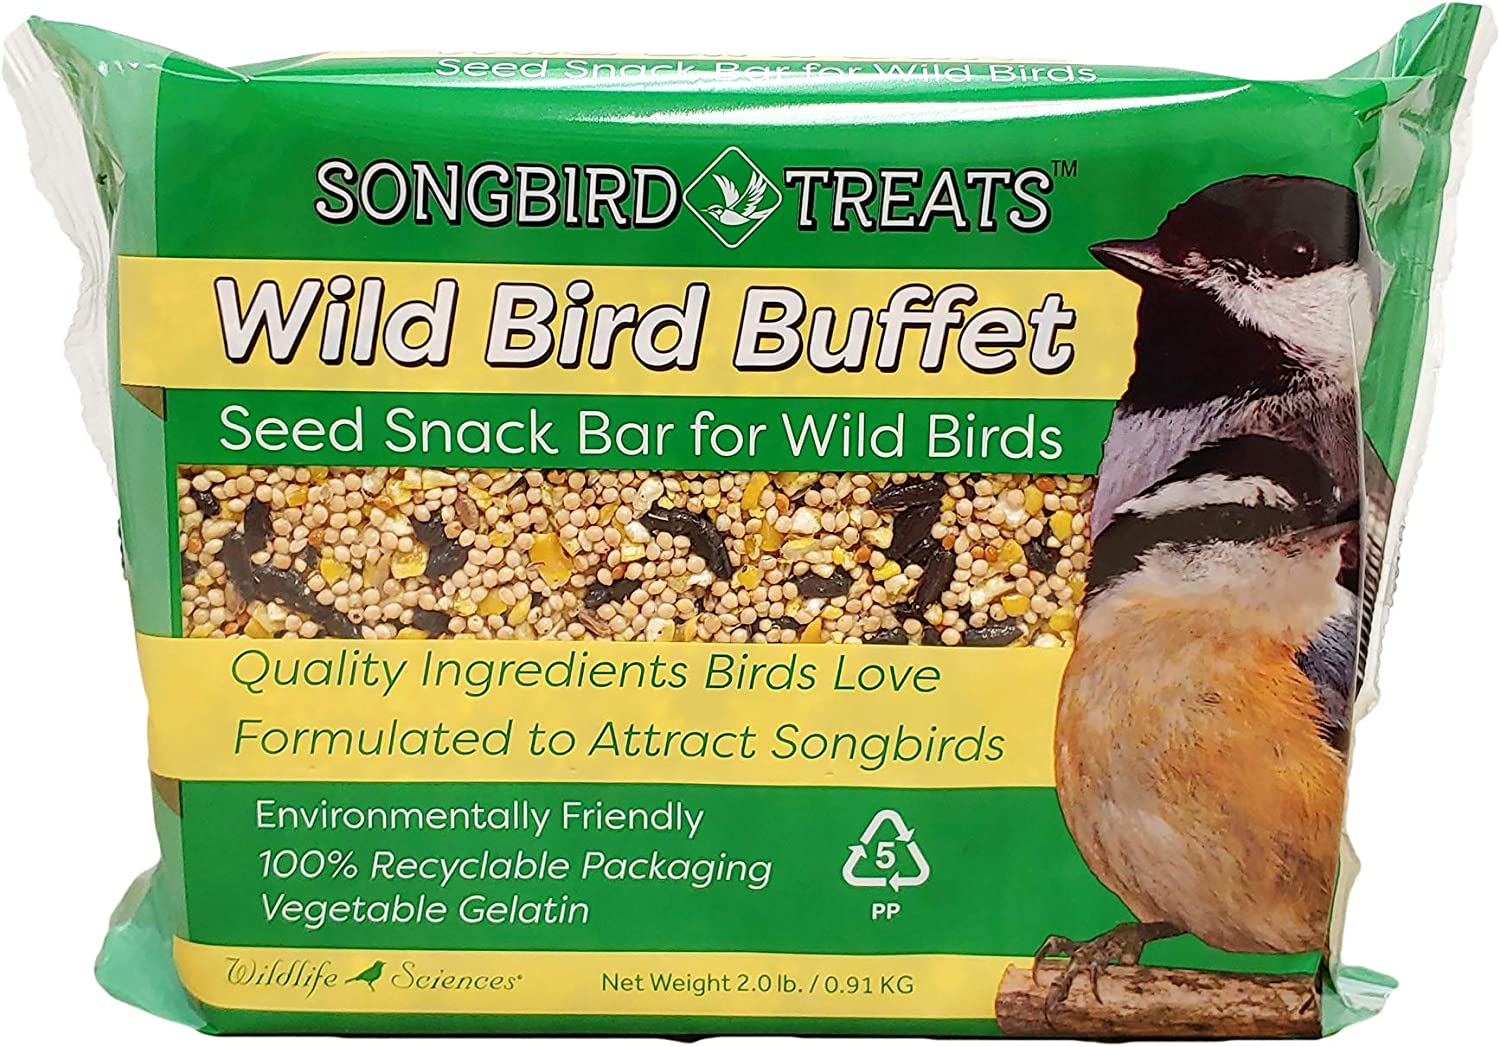 Songbird Treats Seed Cakes Large Seed Bars | 1.5-2 lb Large Bird Seed Cakes for Wild Birds